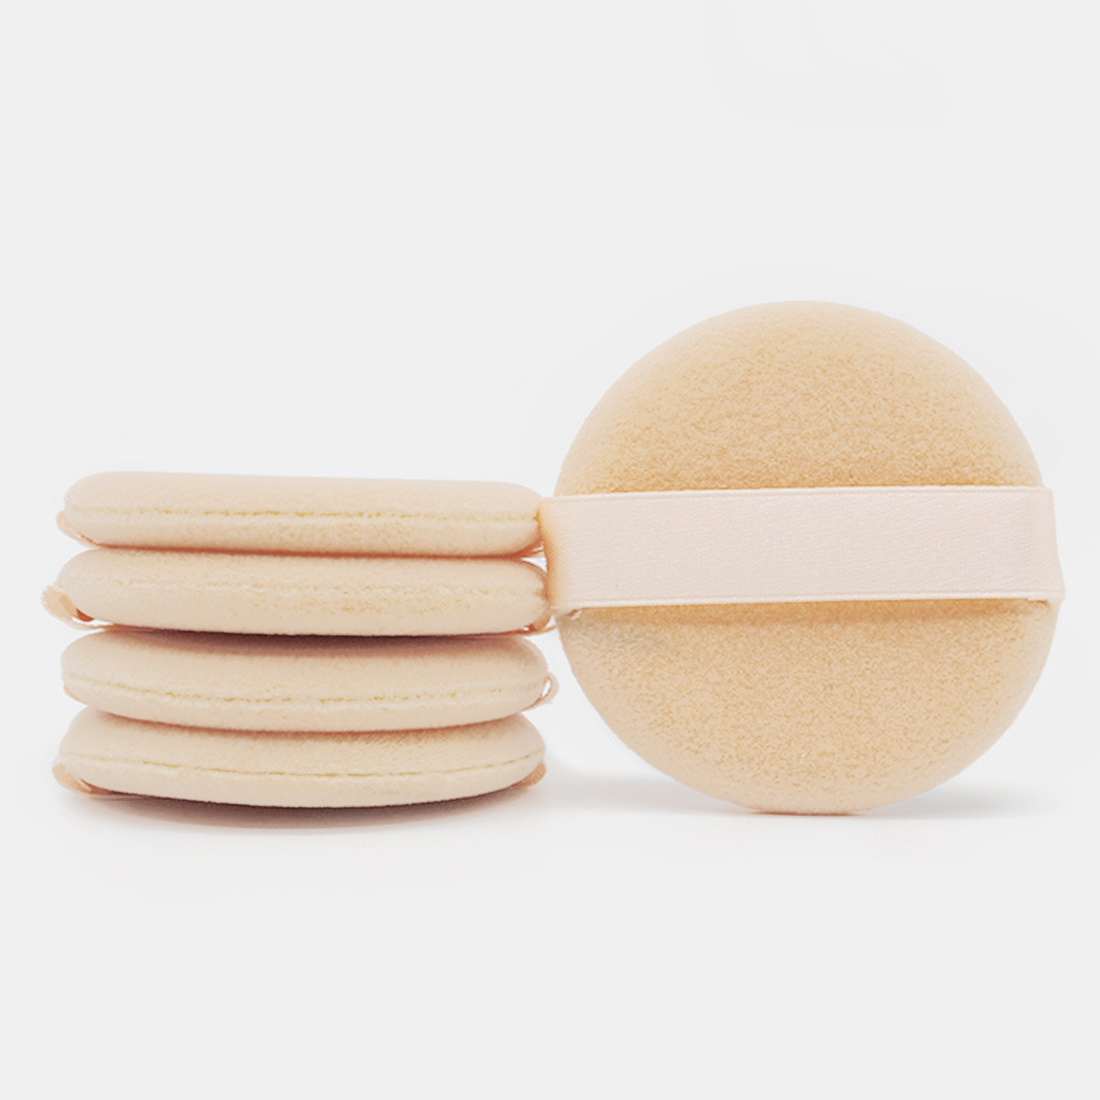 Woolen Cloth Soft Skin-friendly Face Smooth Foundation Powder Cosmetic Puff 5PCS Organic Cotton Pads Makeup Sponge Puff Beauty image